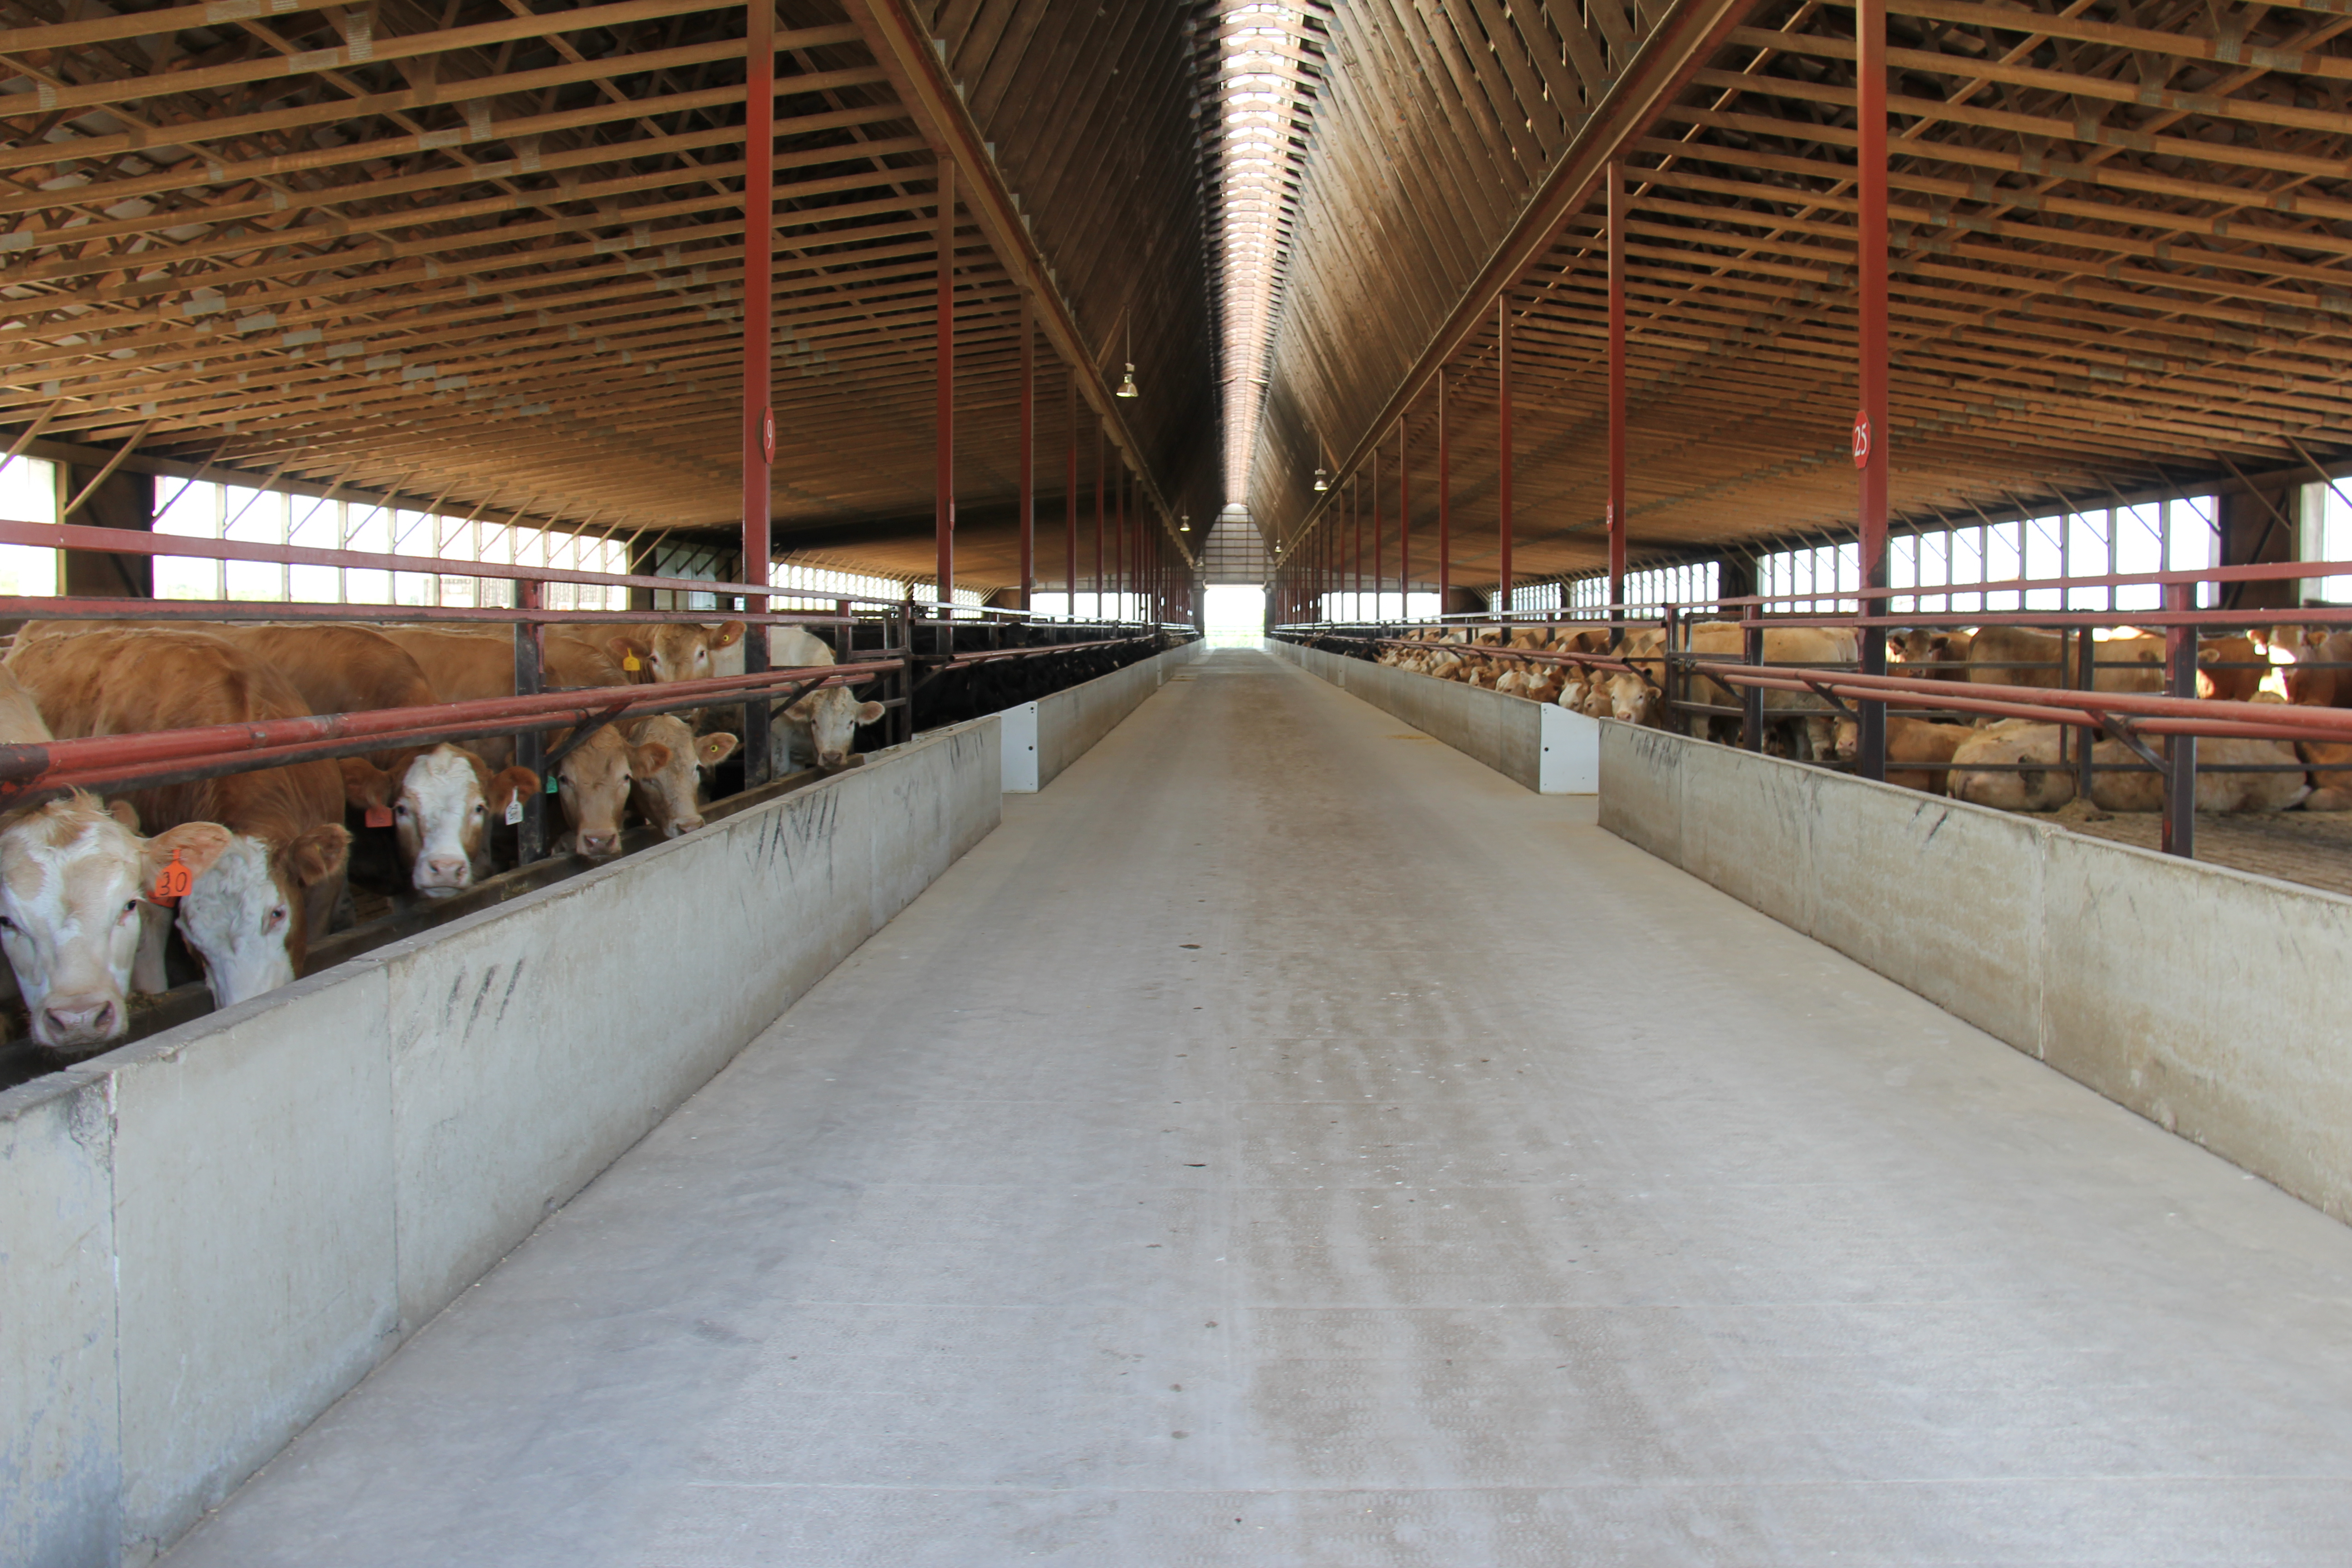 The inside of the barn